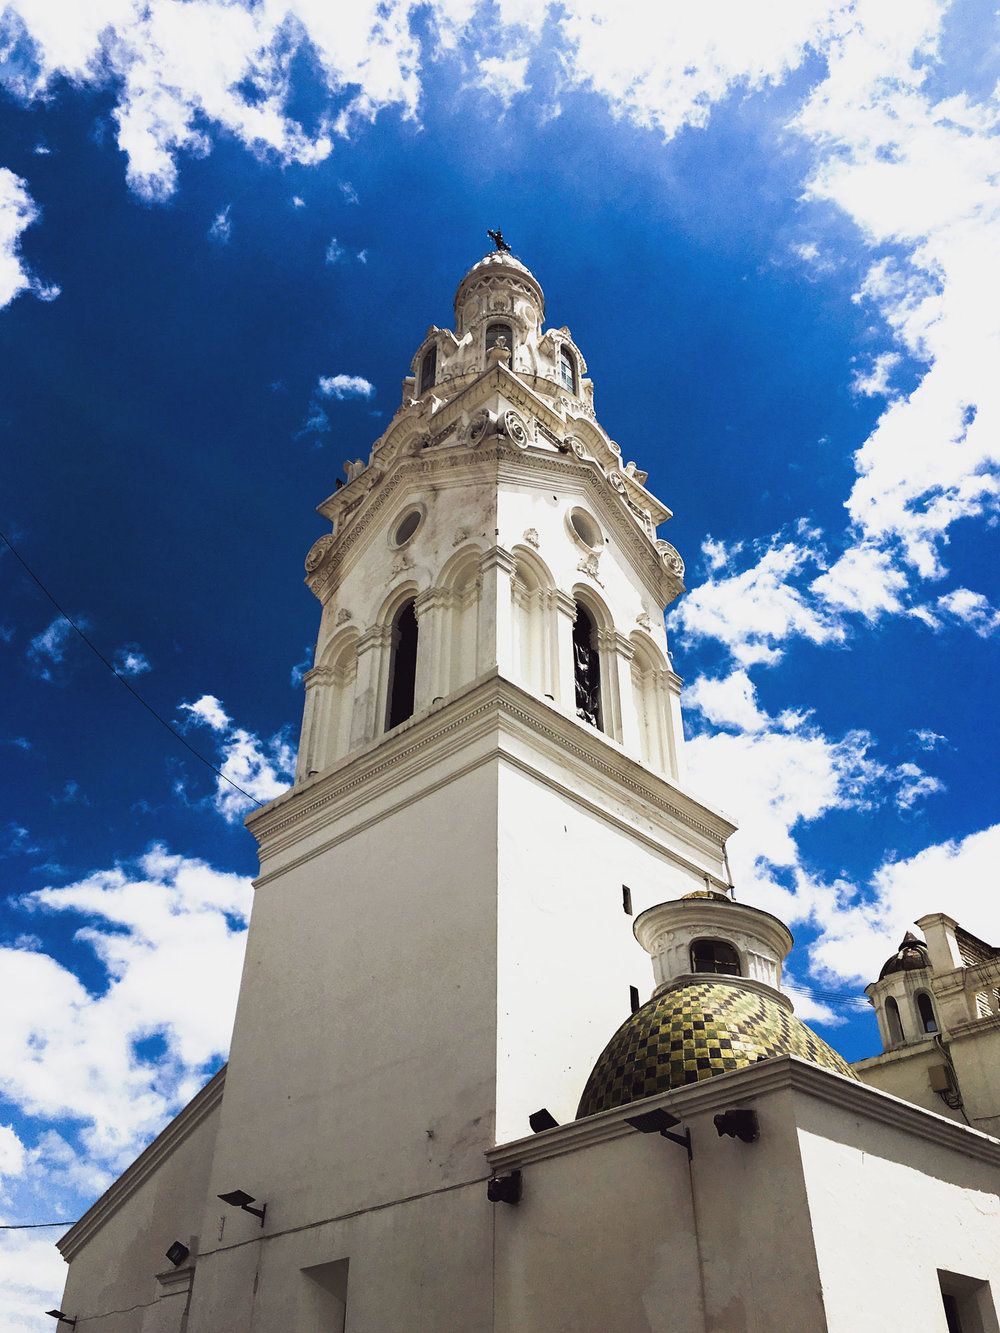 quito-ecuador-wander-south-bell-tower.jpg